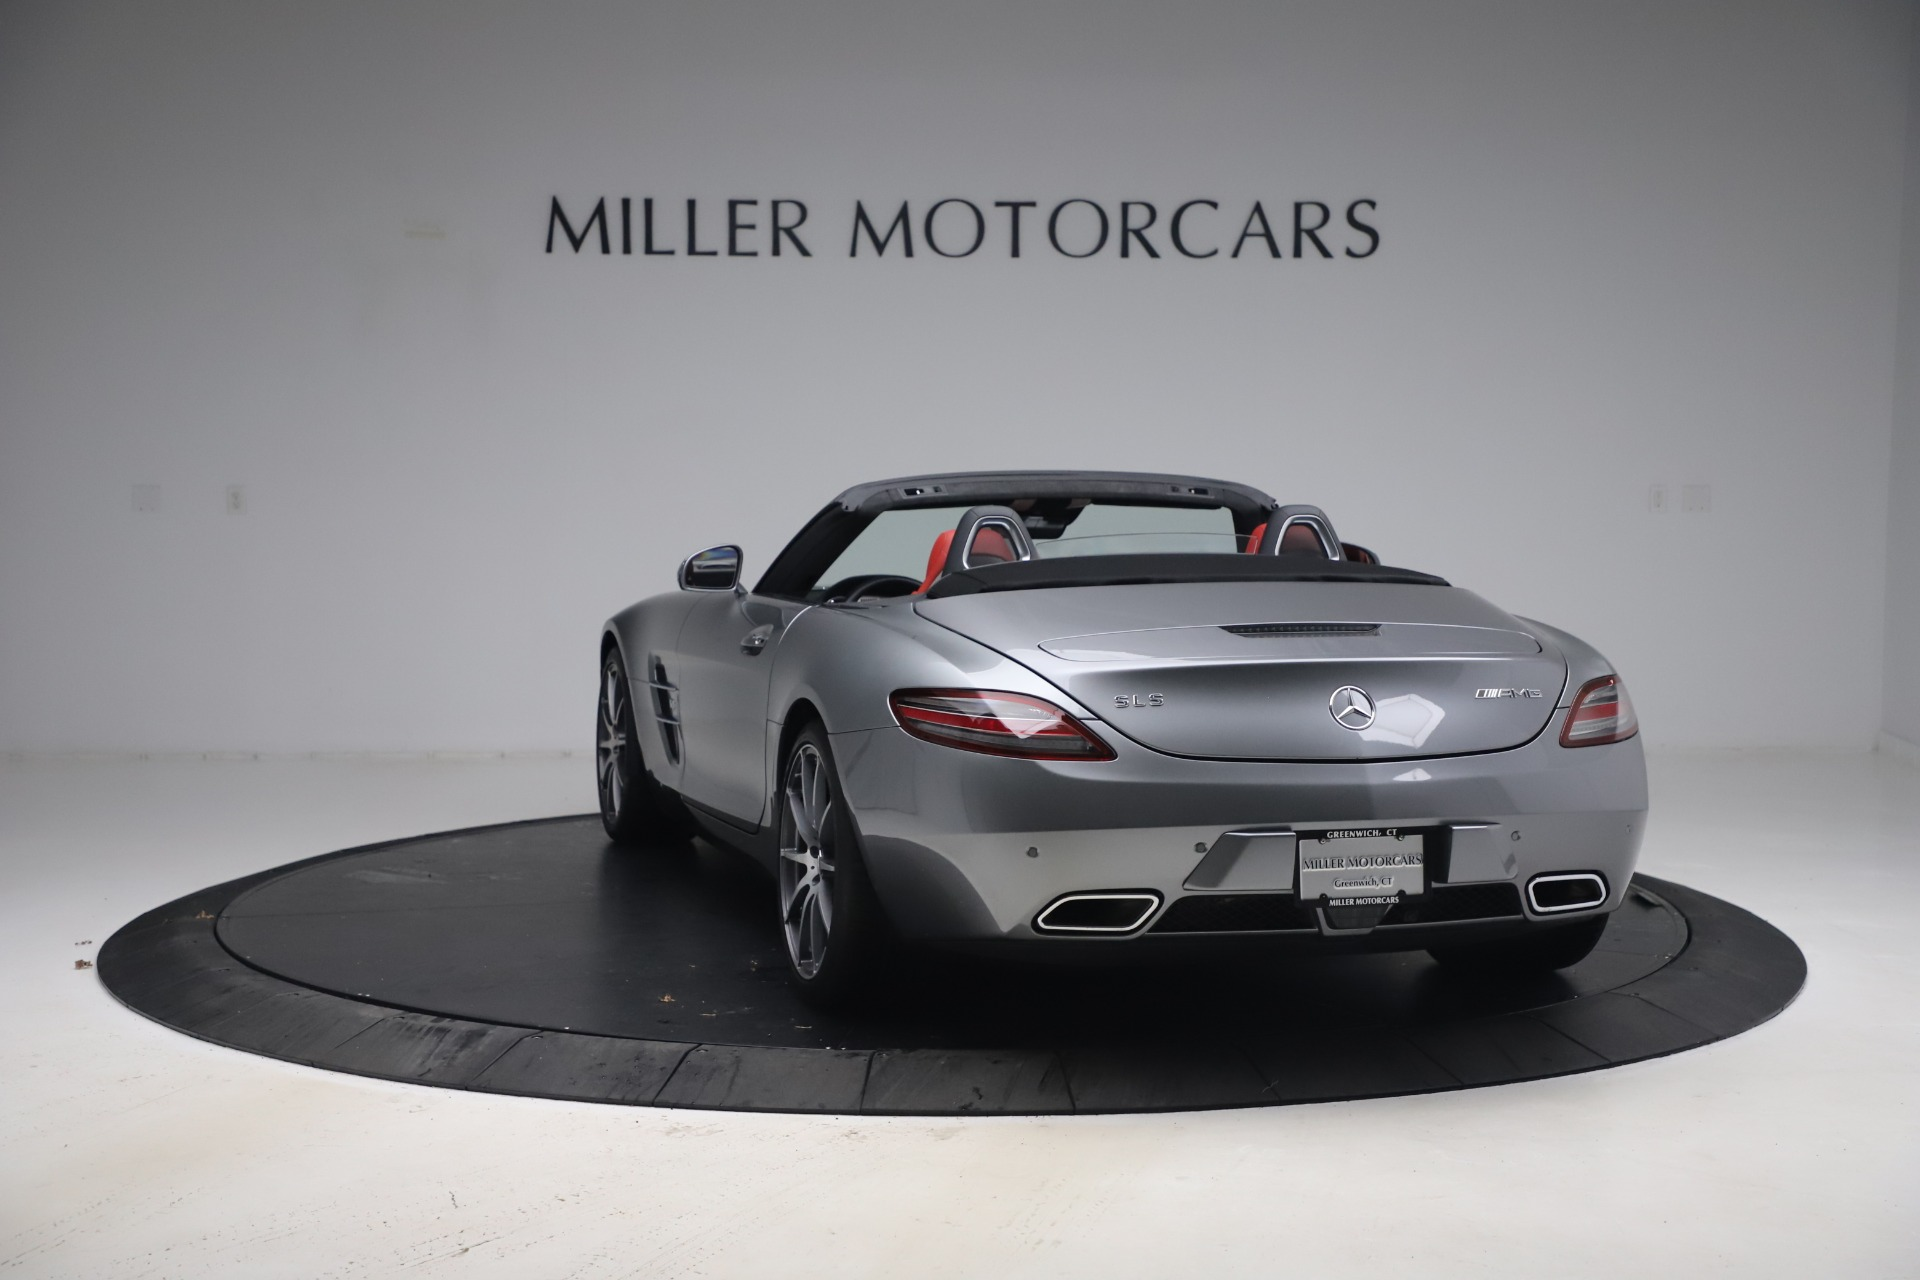 Used 2012 Mercedes-Benz SLS AMG  For Sale In Greenwich, CT 3189_p7